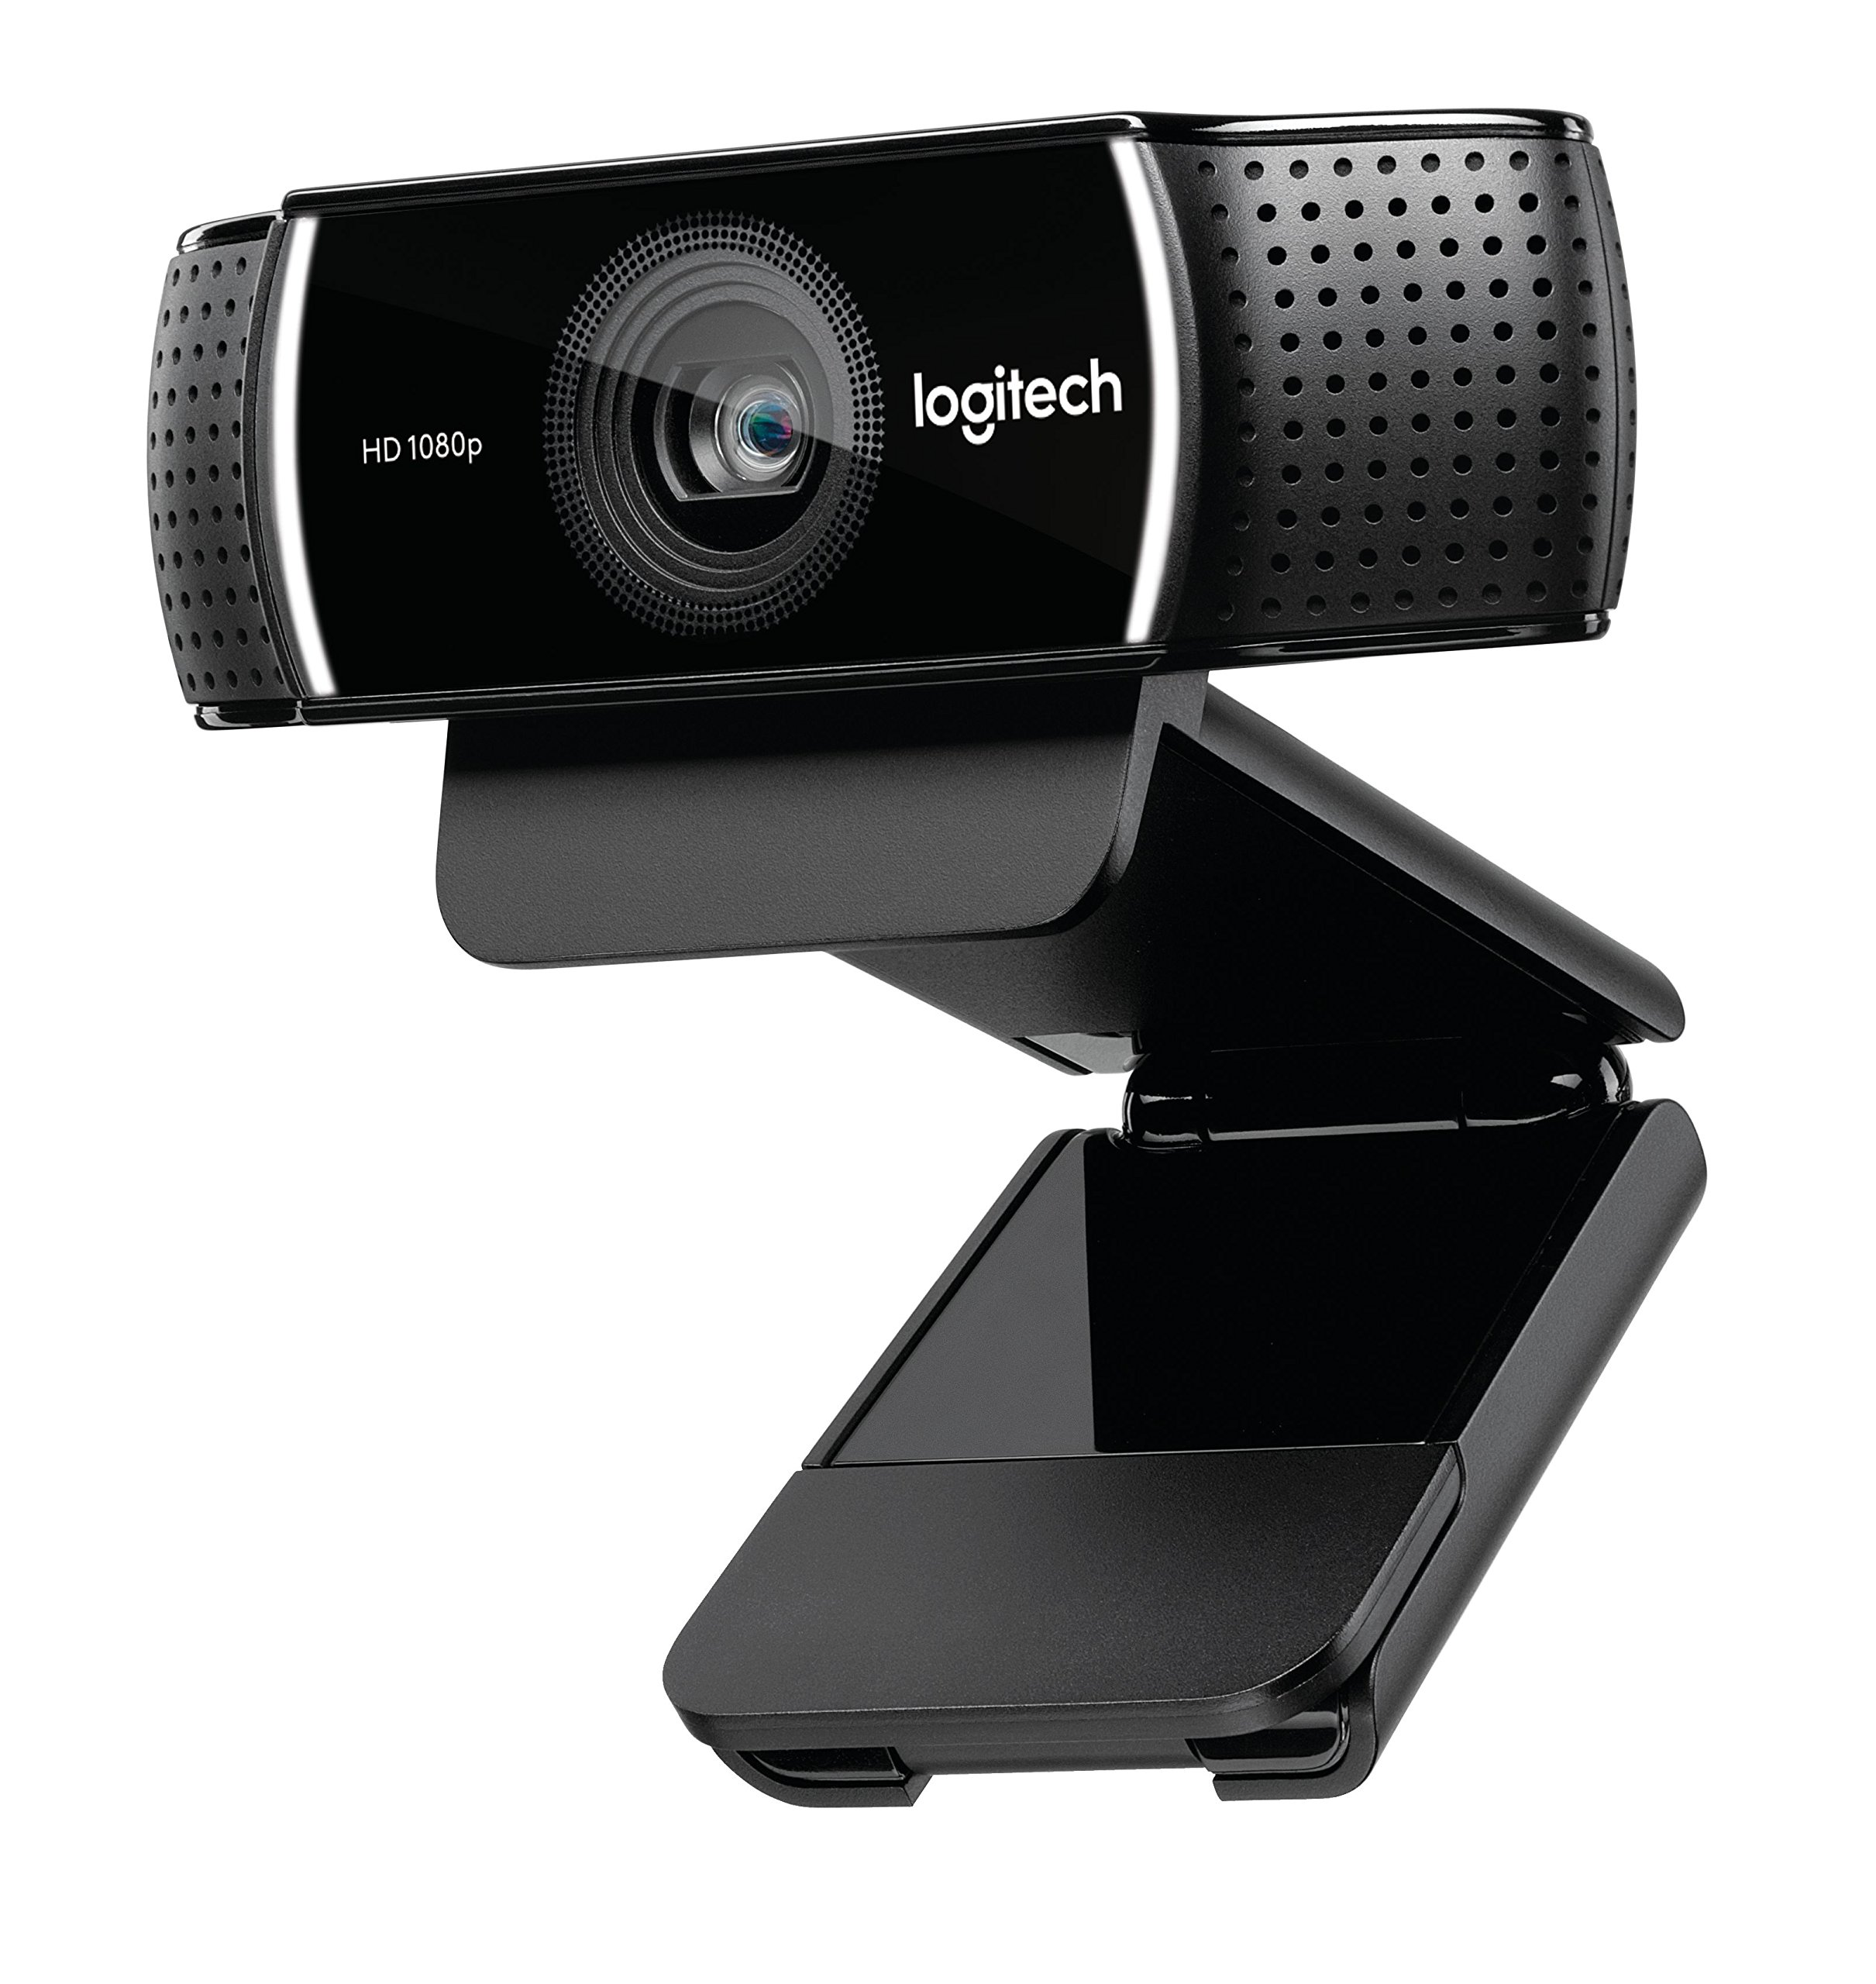 Logitech C922x Pro Stream Webcam – Full 1080p HD Camera – Background Replacement Technology for YouTube or Twitch Streaming by Logitech